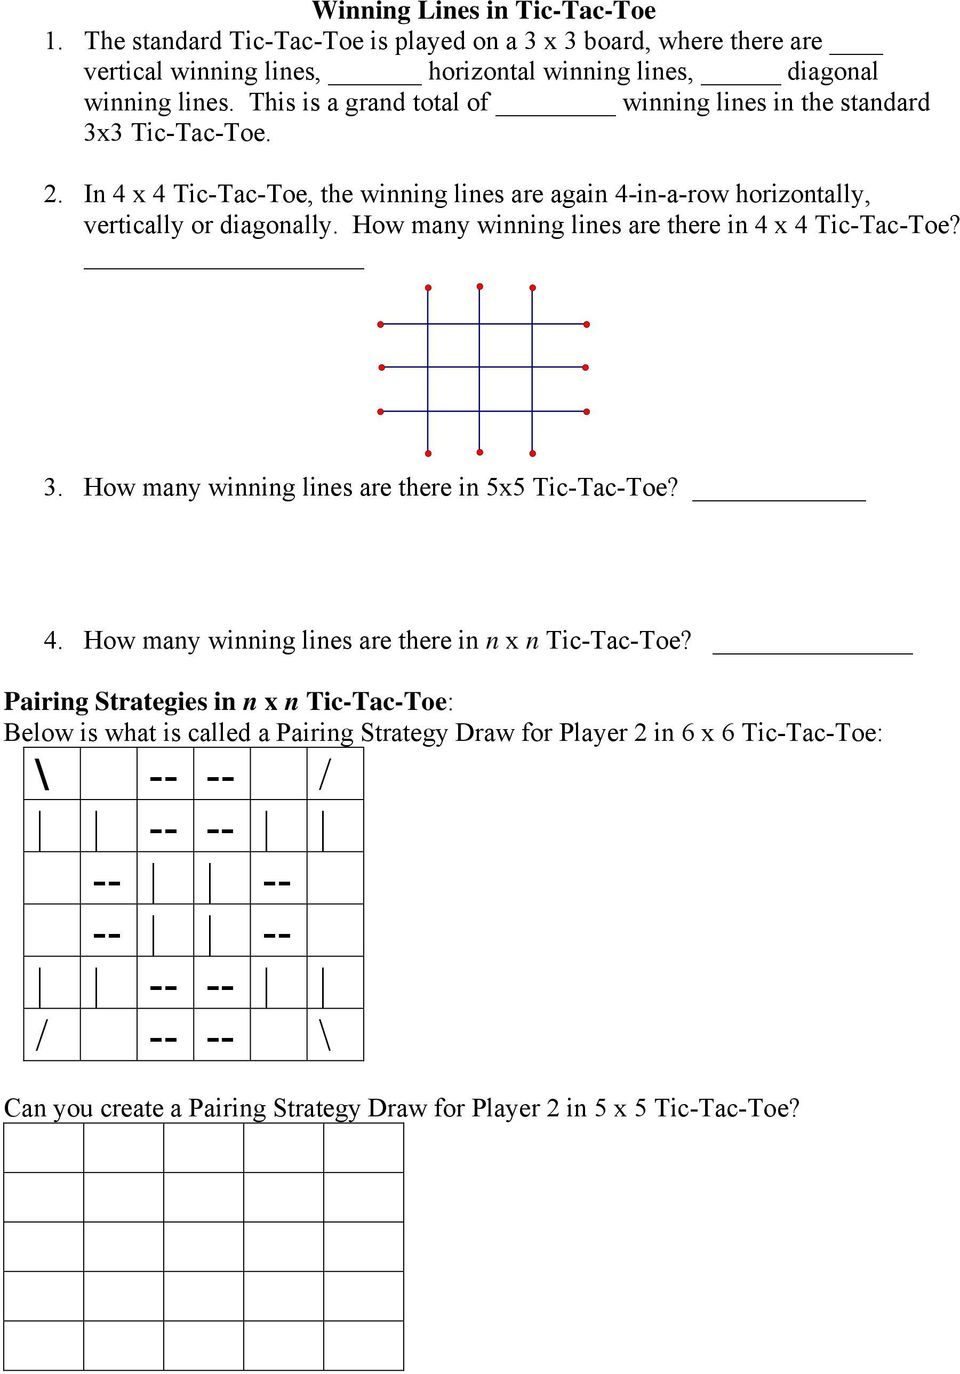 How many winning lines are there in 4 x 4 Tic-Tac-Toe? 3. How many winning lines are there in 5x5 Tic-Tac-Toe? 4. How many winning lines are there in n x n Tic-Tac-Toe?